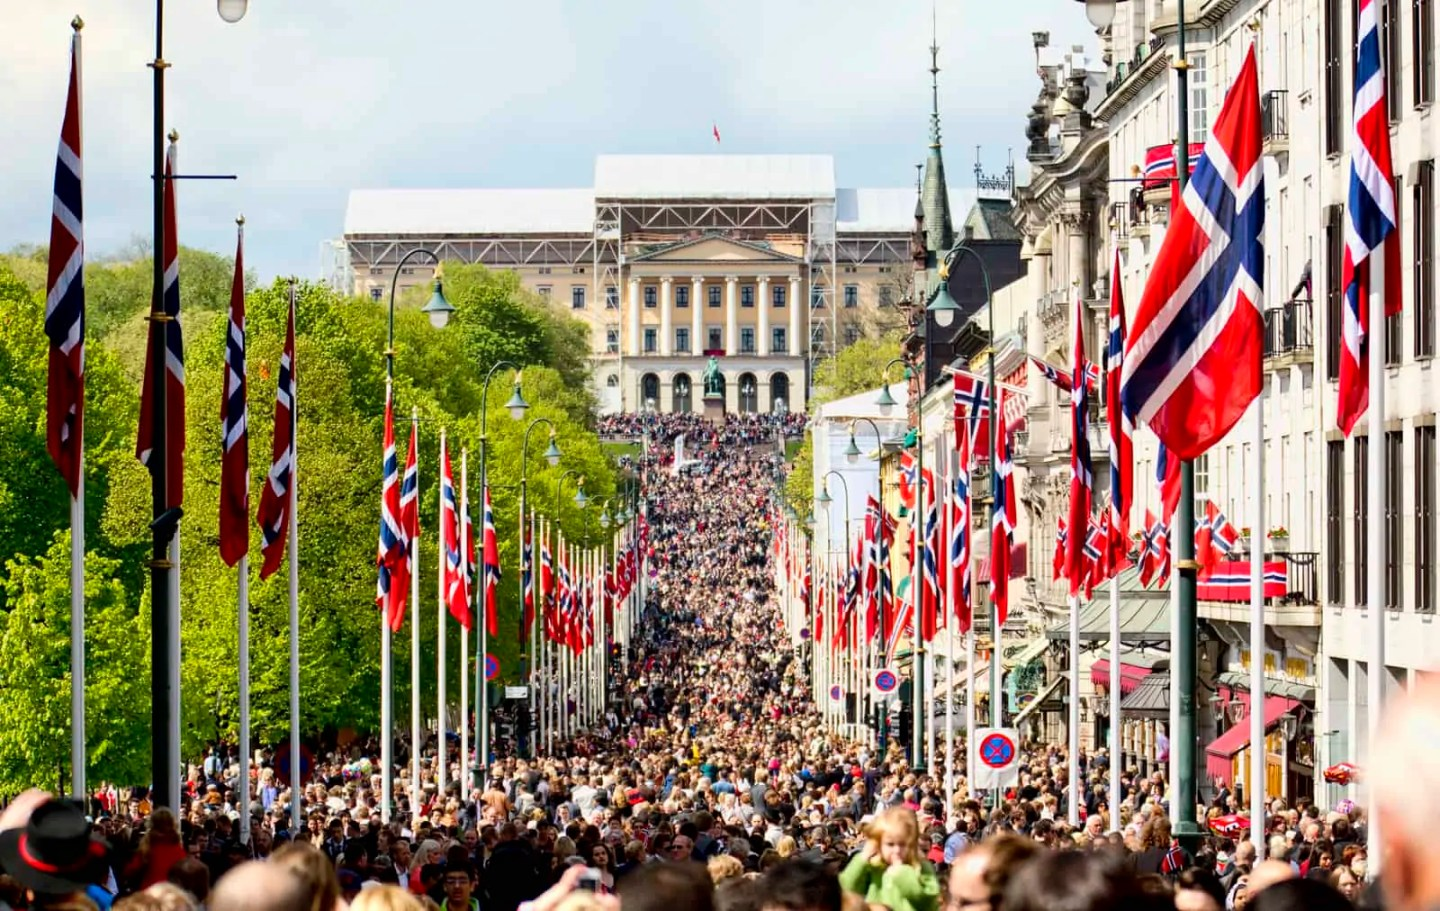 best time to visit Oslo, things to do in Oslo, free things to do in Oslo, fun things to do in Oslo, Karl Johan, Norway's constitution day 17th of mai